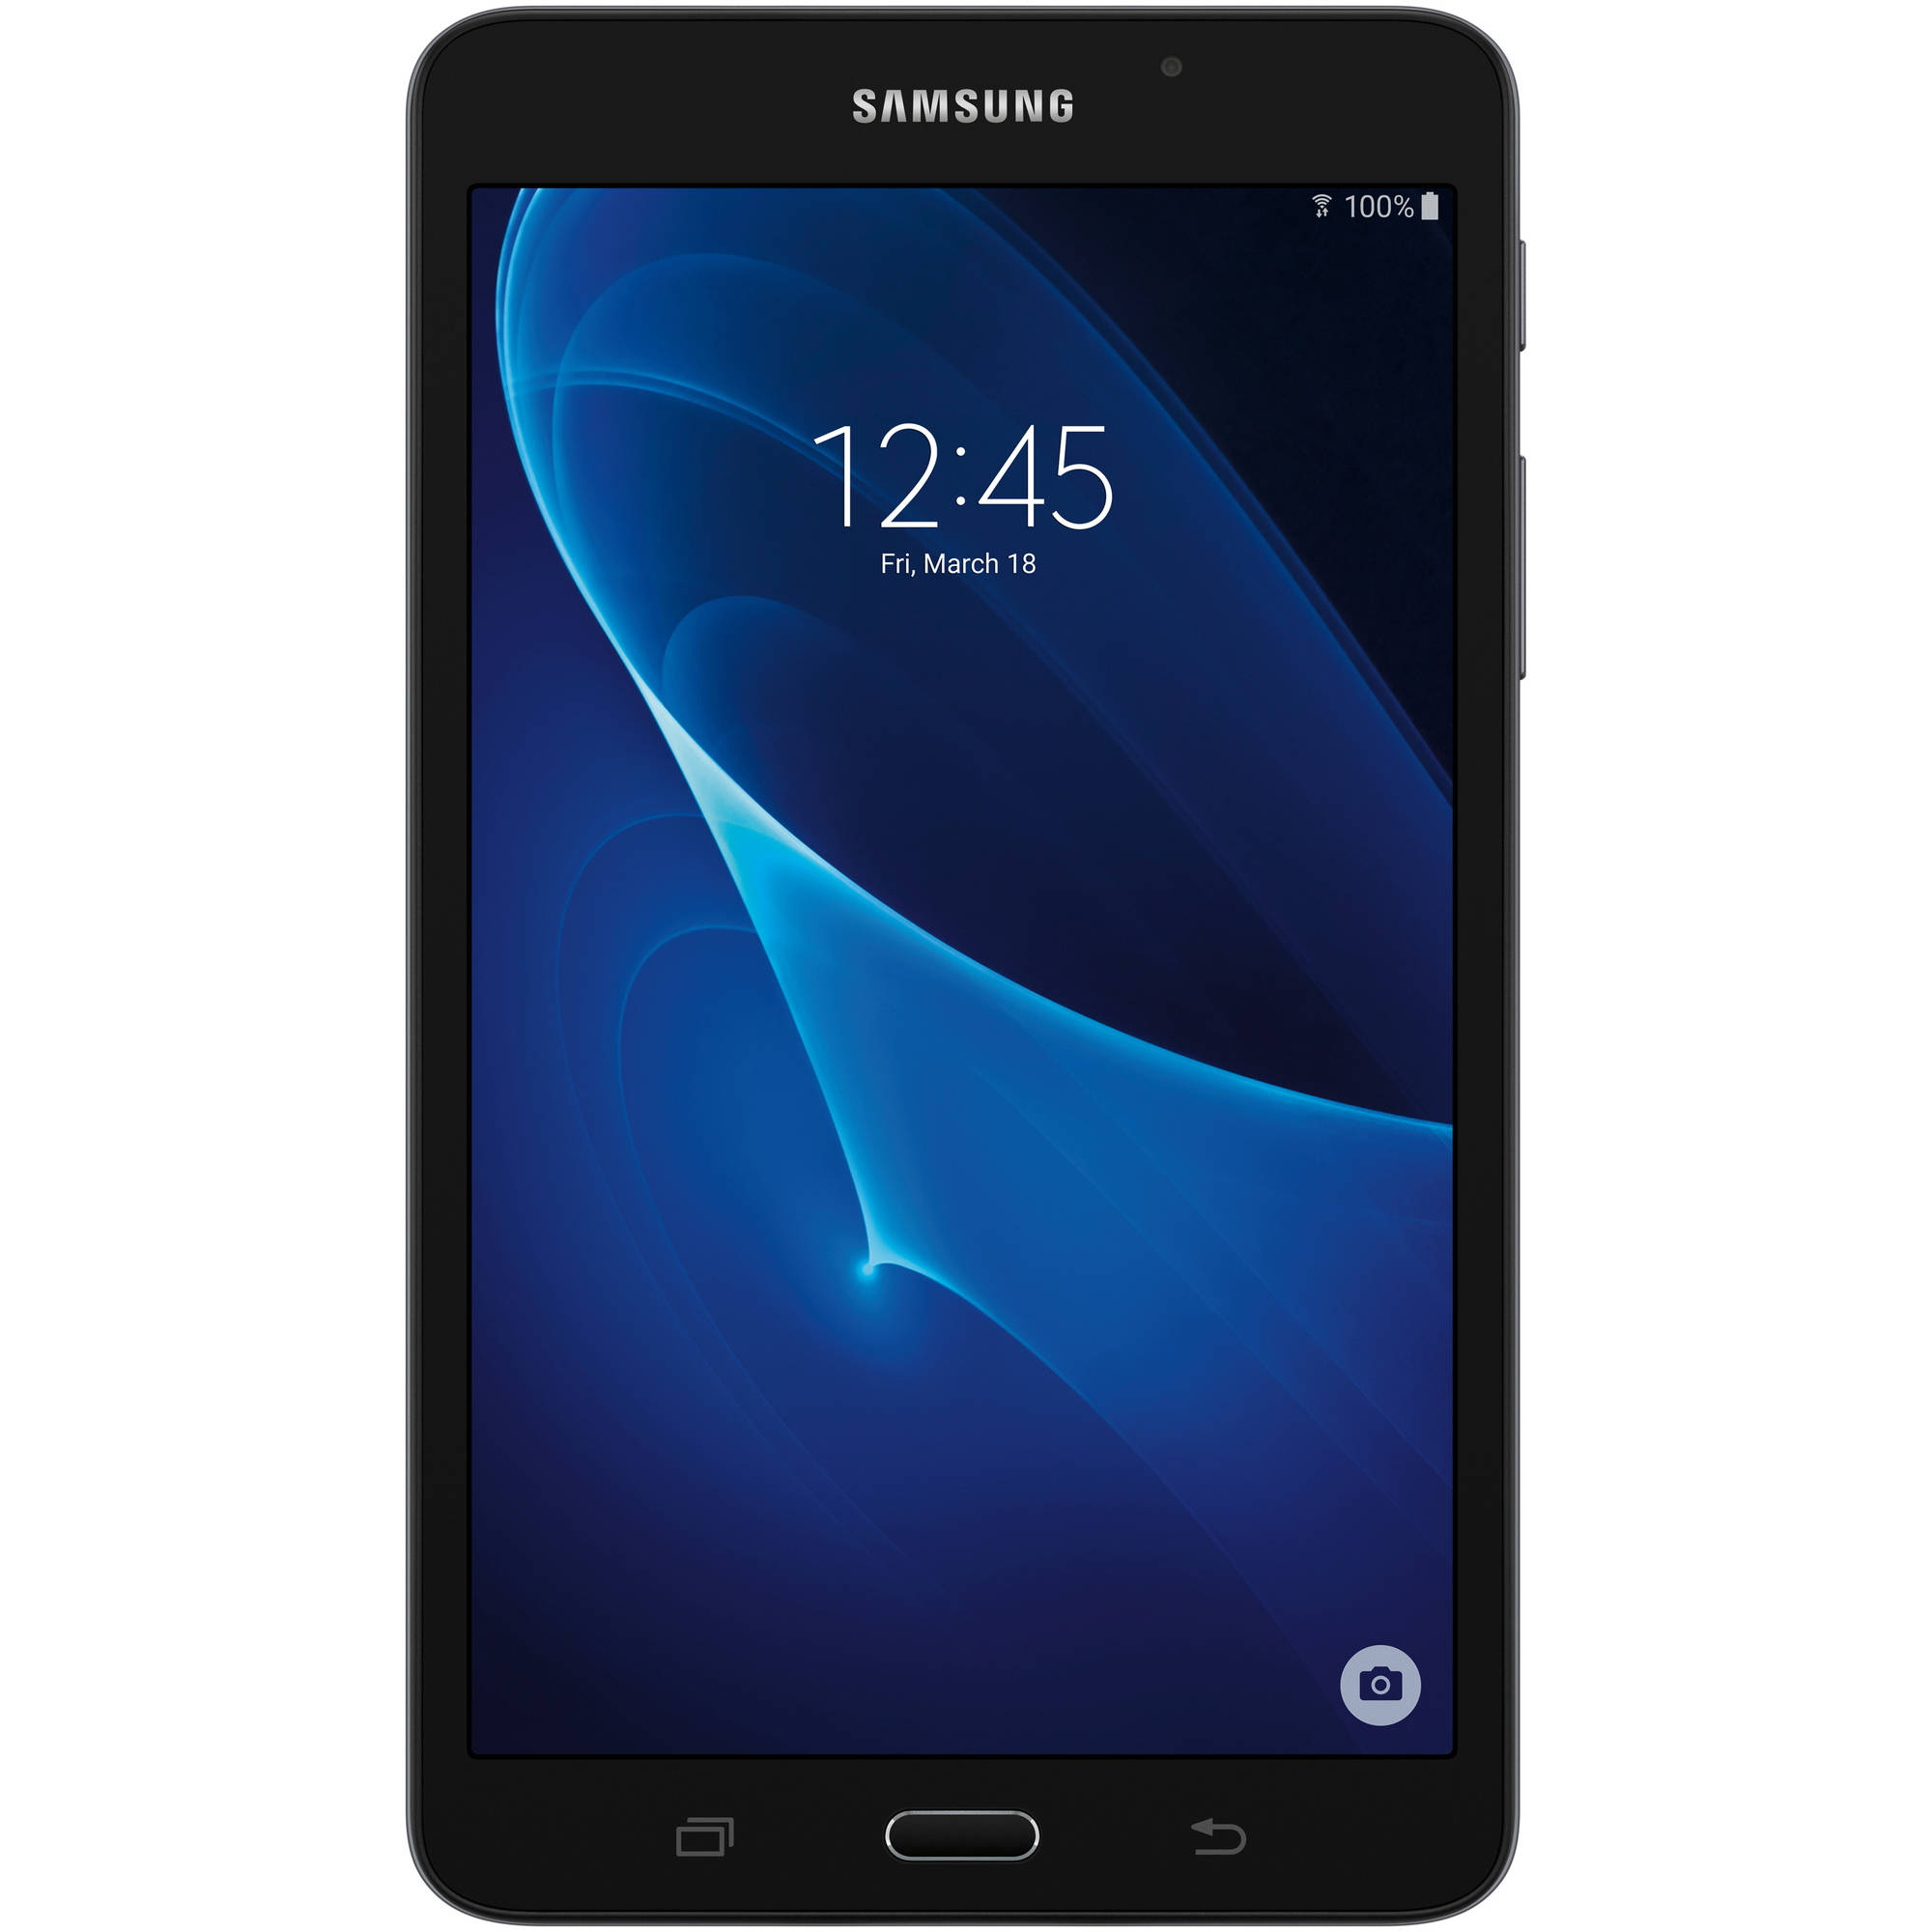 "Samsung Galaxy Tab A with WiFi 7"" Touchscreen Tablet PC Featuring Android 5.1 (Lollipop) Operating System, Black"